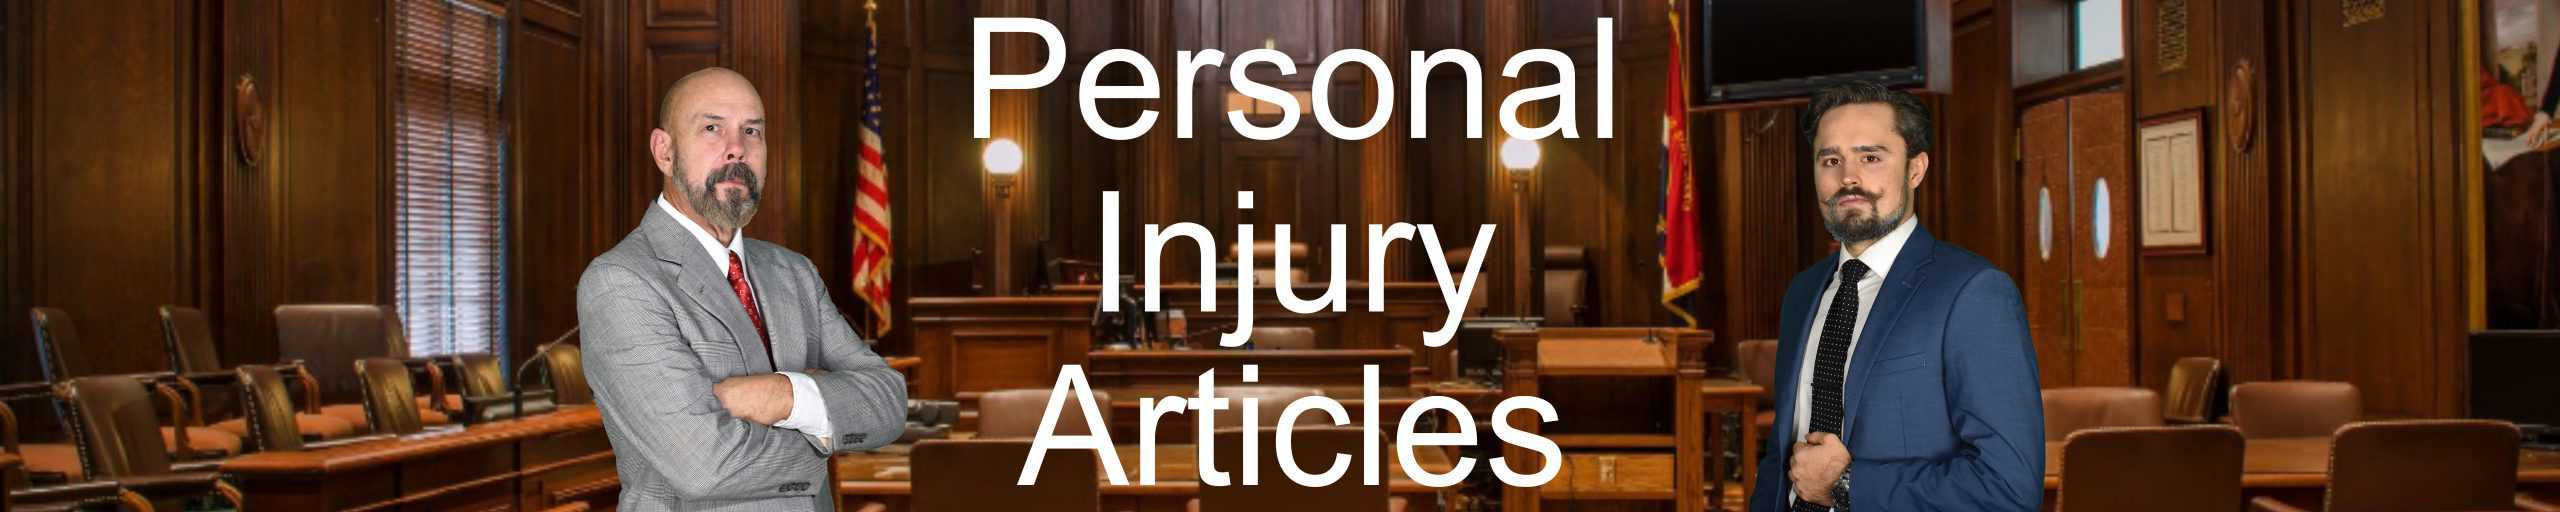 Personal-Injury-Articles-Attorney-Lawyer-Settlement